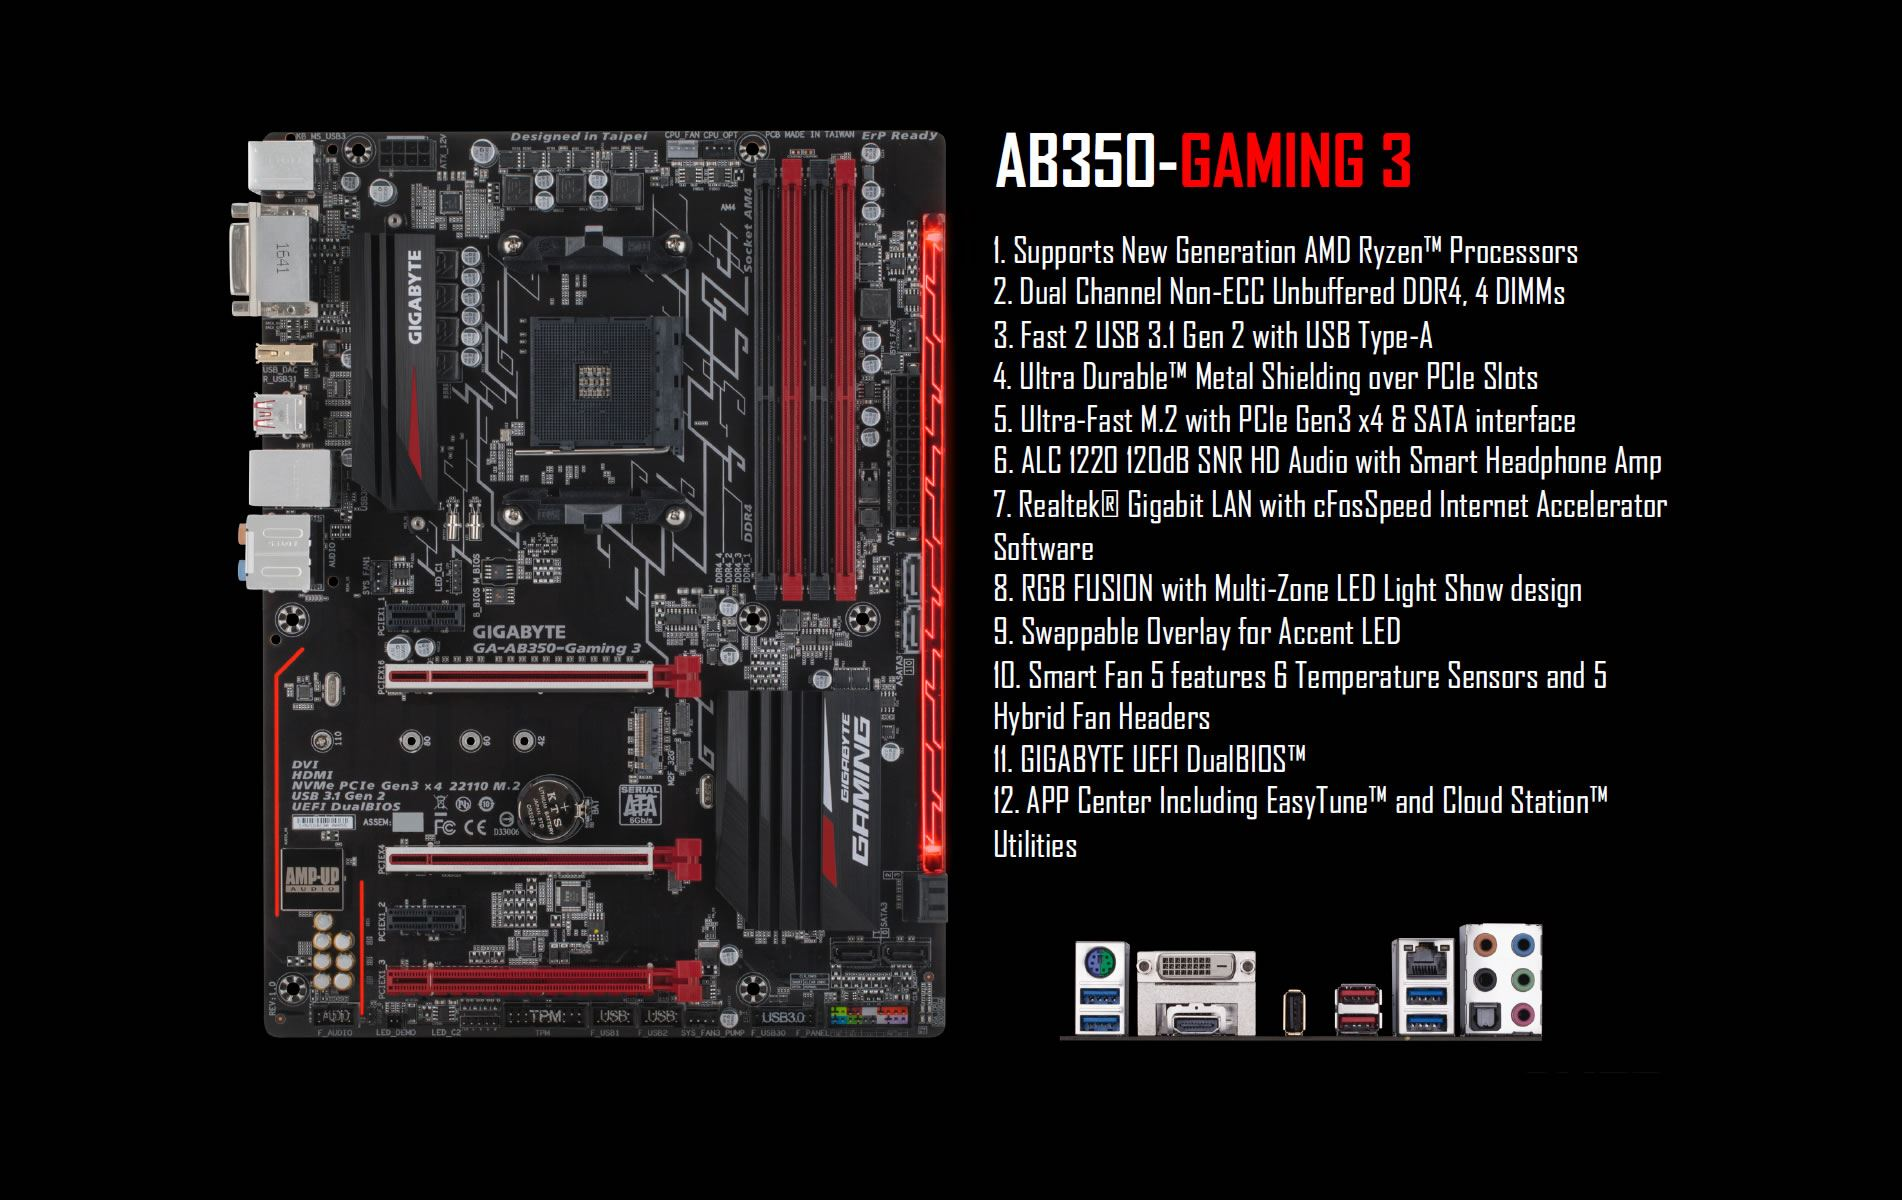 Gigabyte AB350 Gaming3 Aorus AM4 B350 Chipset ATX Motherboard overview